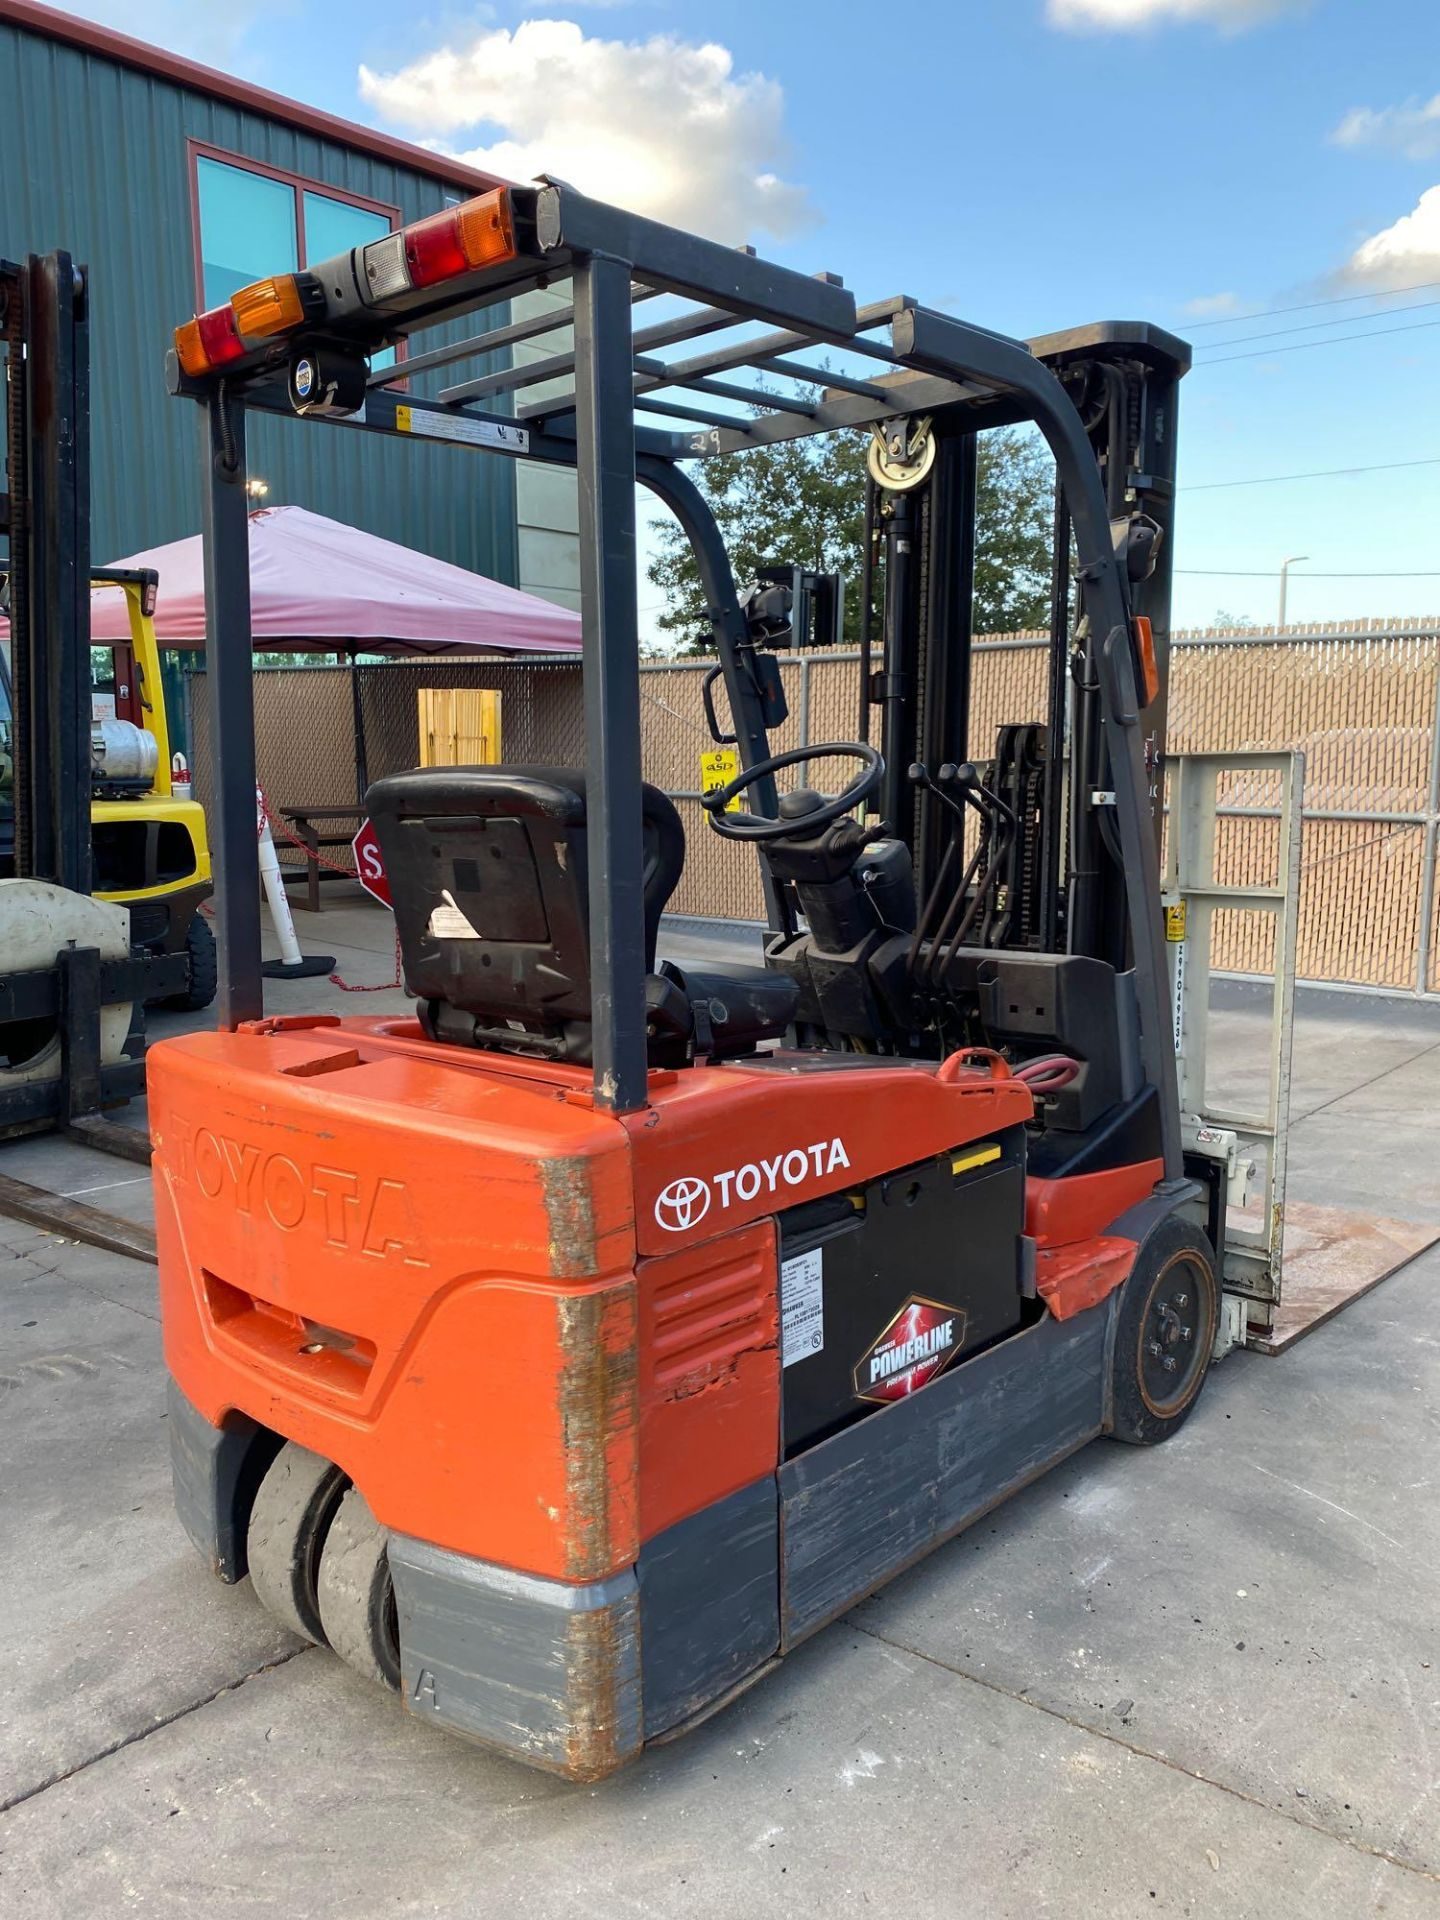 TOYOTA ELECTRIC FORKLIFT MODEL 7FBEU20, 4,000 LB CAPACITY, CASCADE PUSH/PULL ATTACHMENT, TILT, SIDE - Image 13 of 24